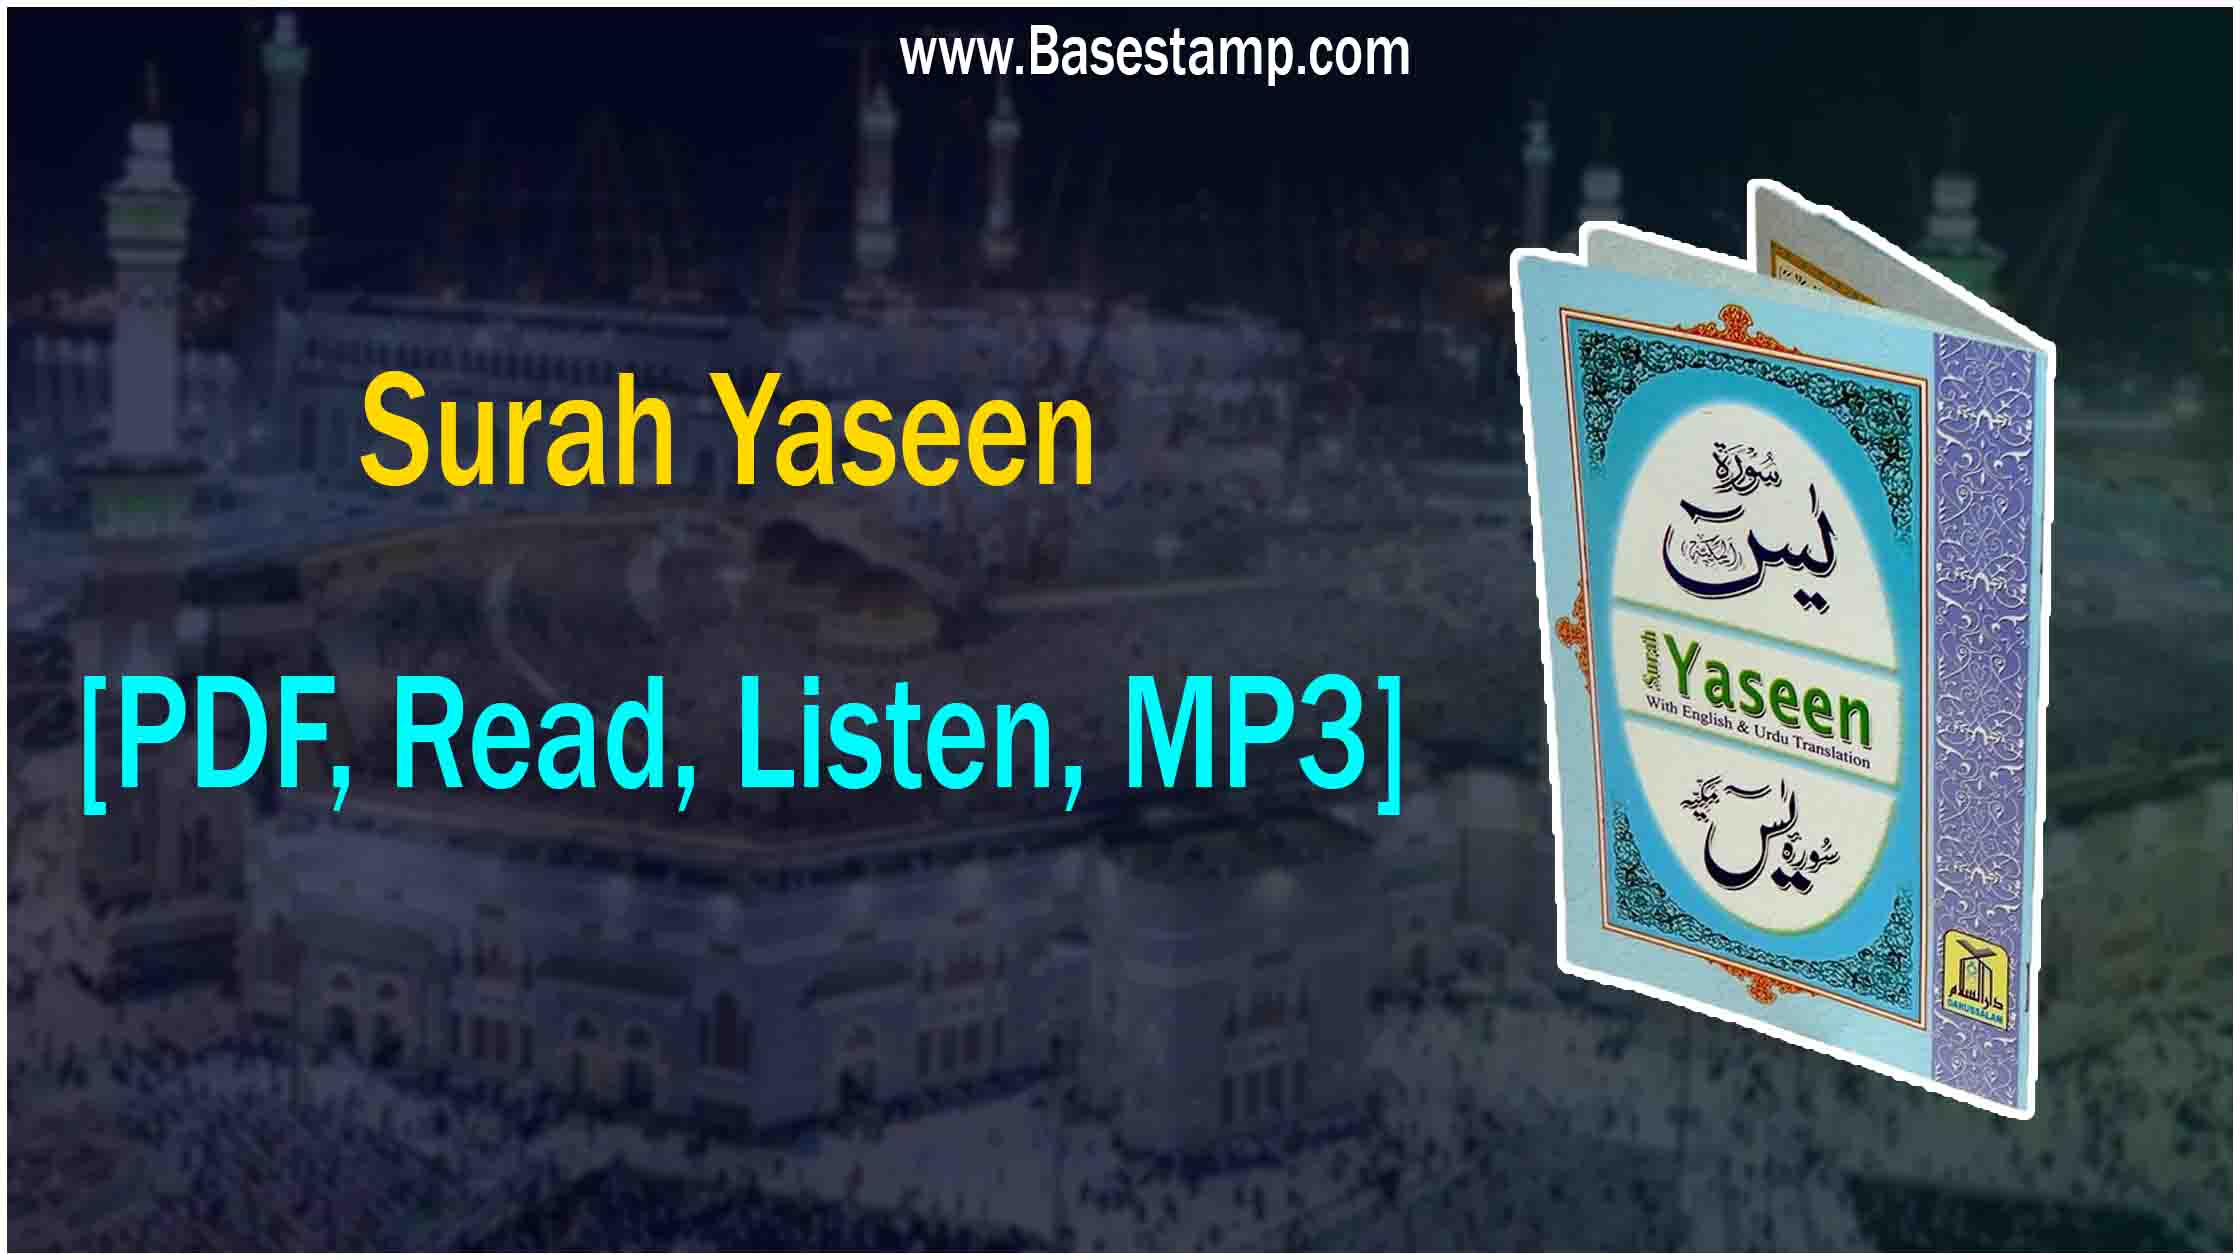 Surah Yaseen PDF- Free Read And Listen Surat Yasin mp3 Mp4 Online